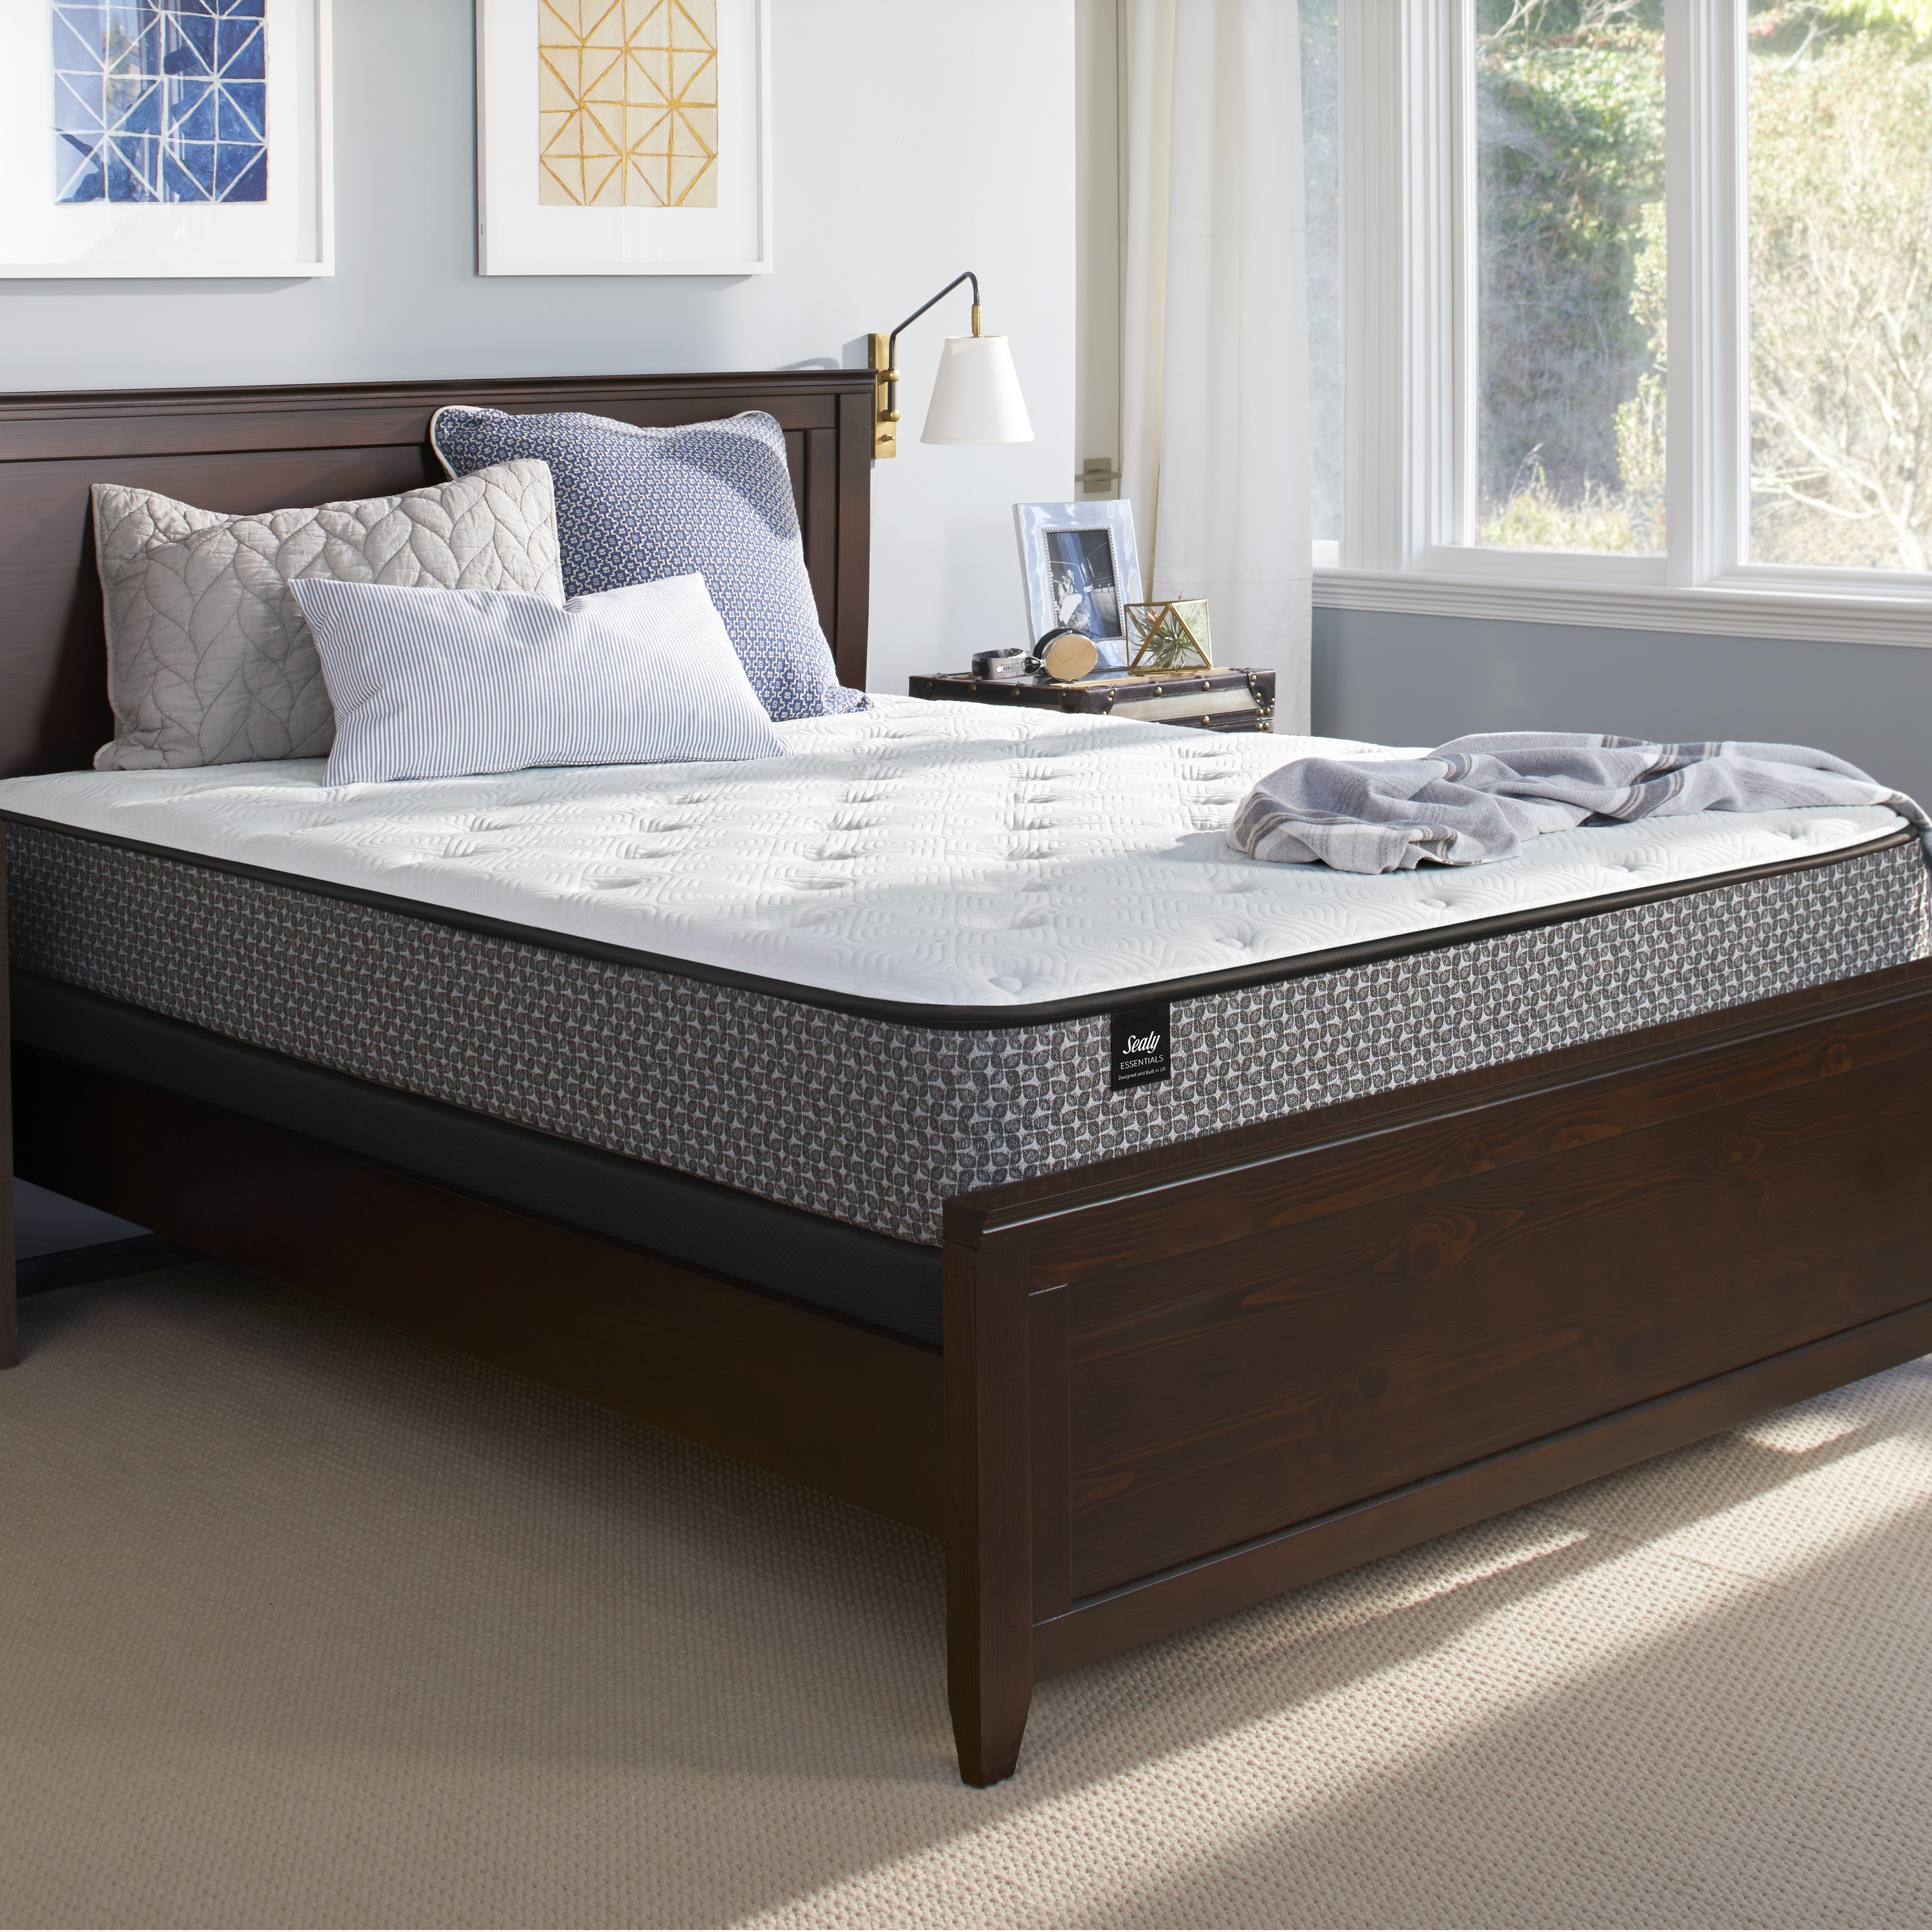 Sealy Response Essentials 10.5 Inch Plush Tight Top Mattress